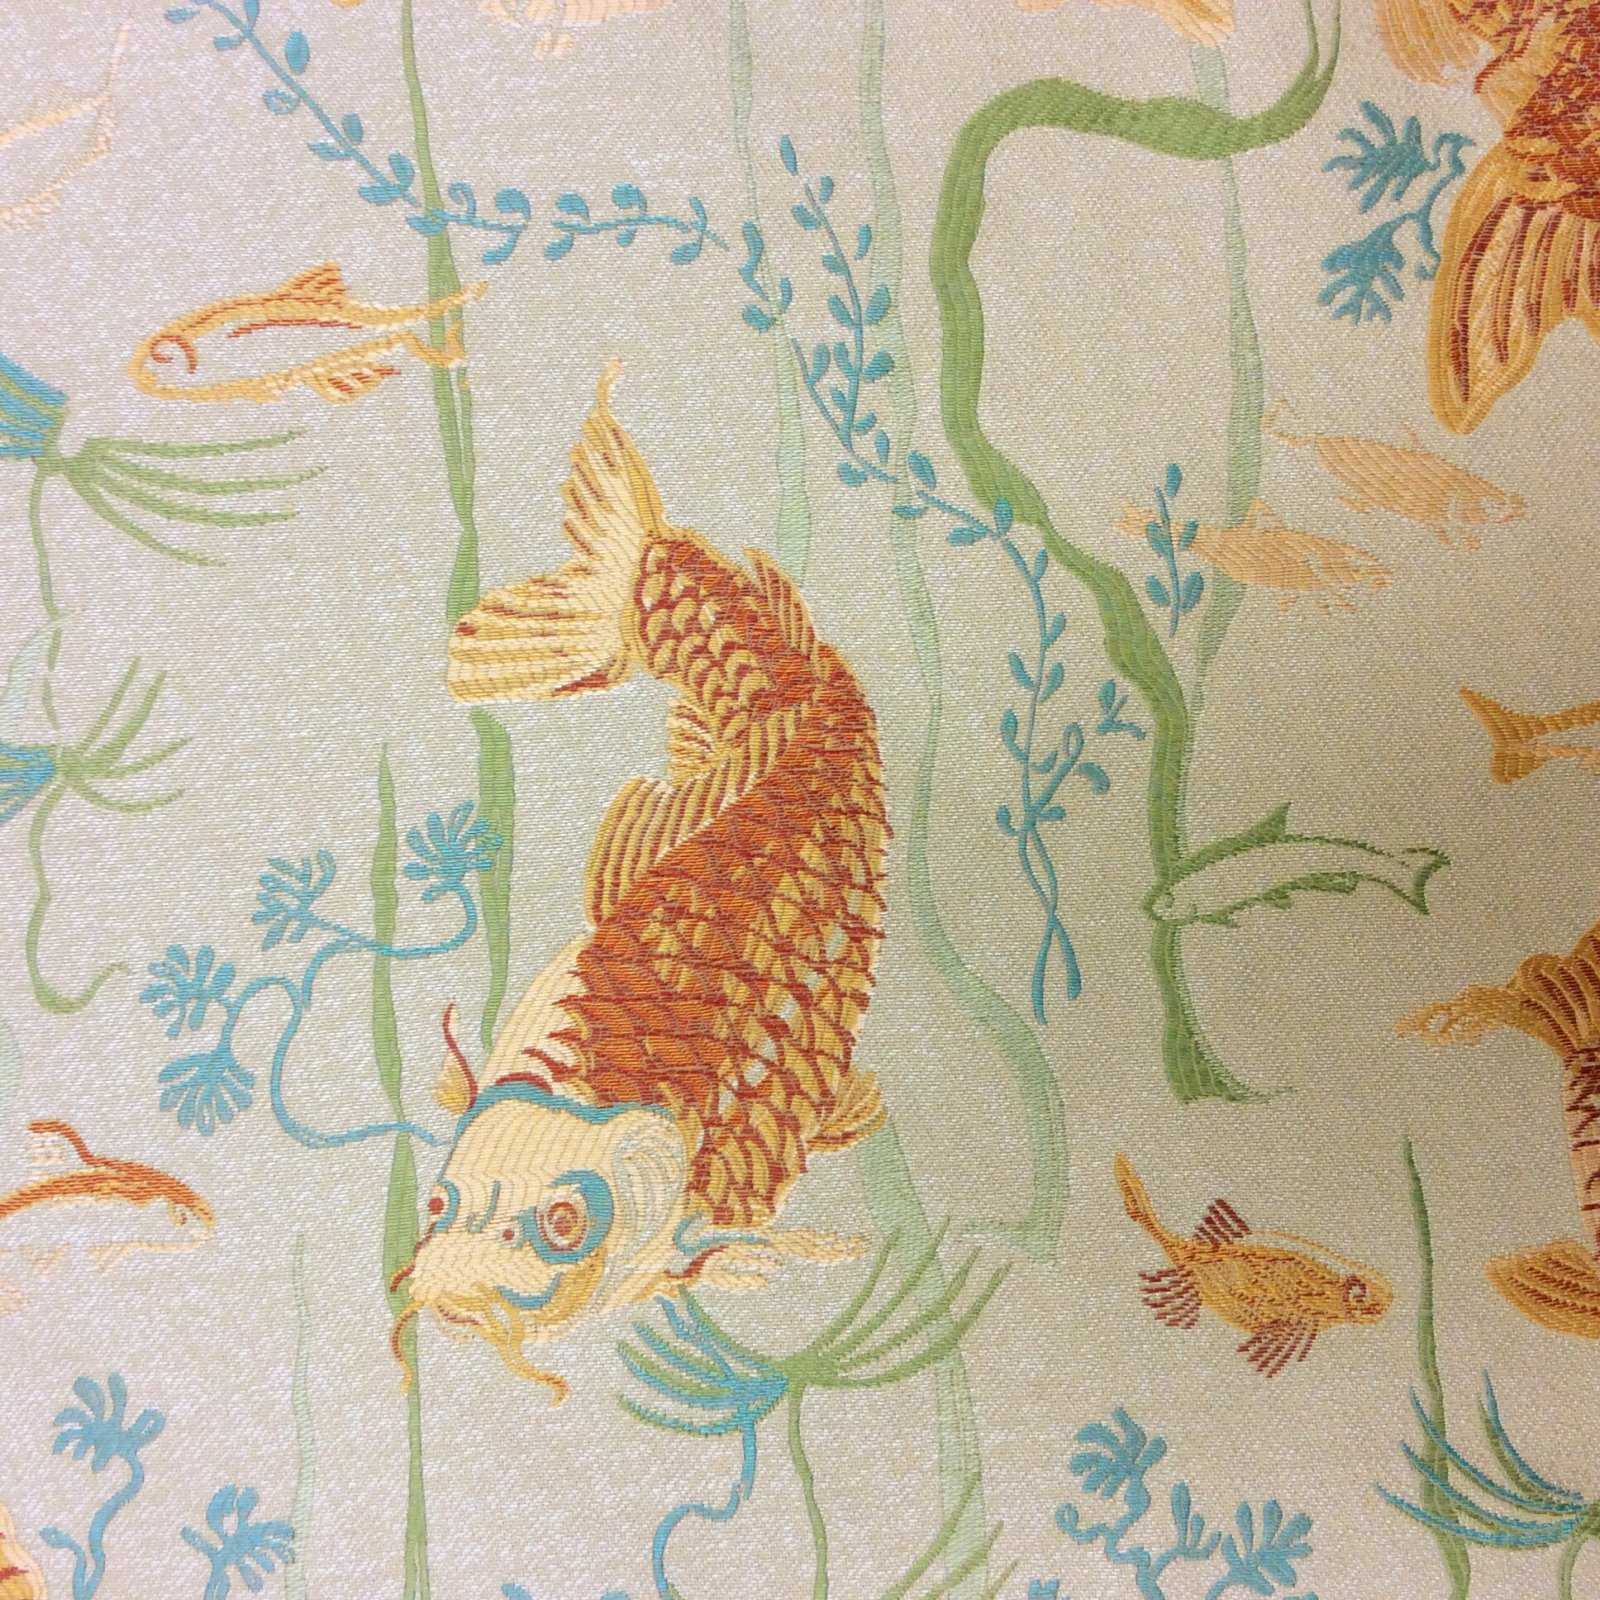 NEW! Koi Fish Sea Grass Asian Japanese Orange Koi Fishes Upholstery Home Dec LHD125-A